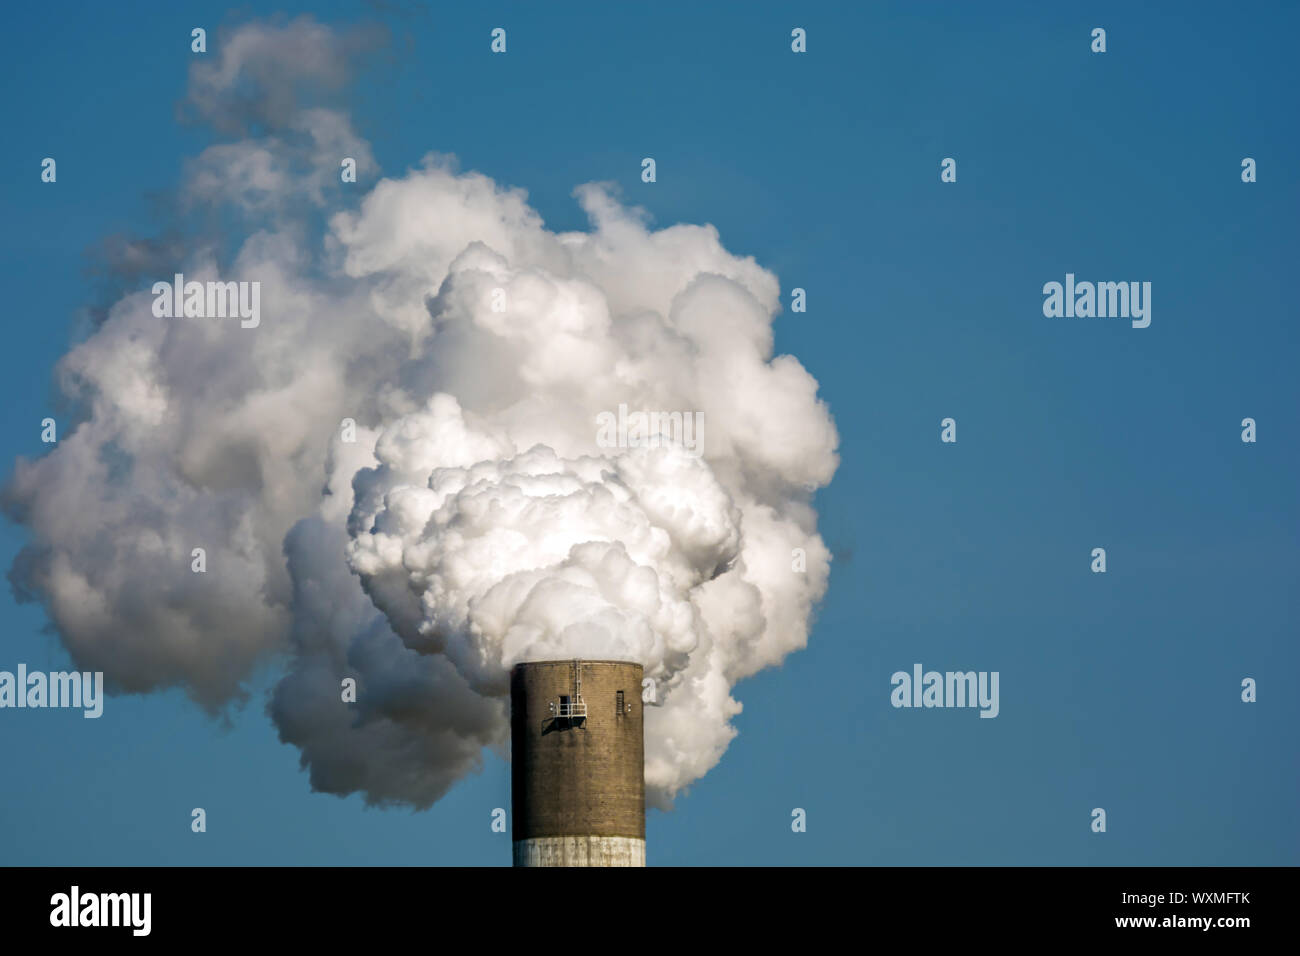 Exhaust gases and pollutants by the industry using the example of a smoky chimney Stock Photo